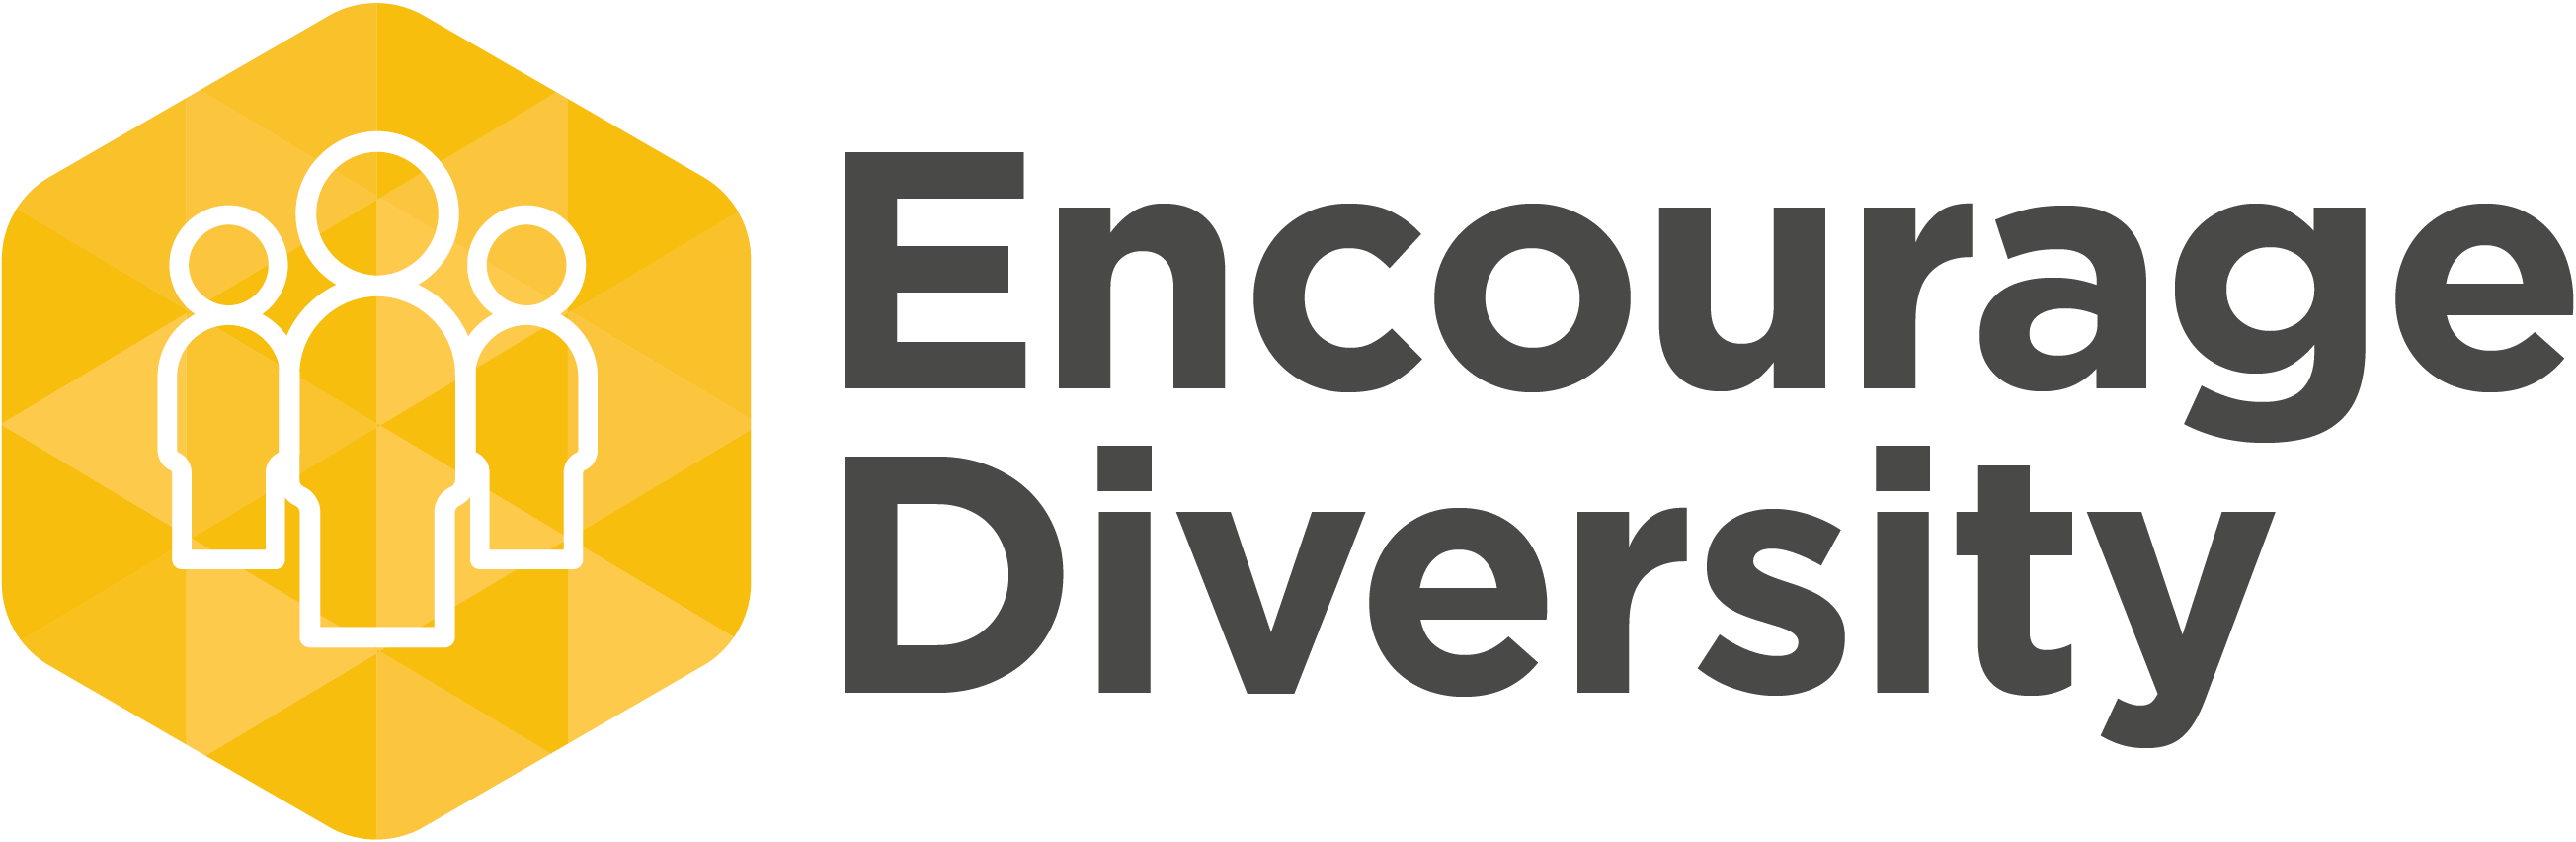 Encourage_Diversity-01.png